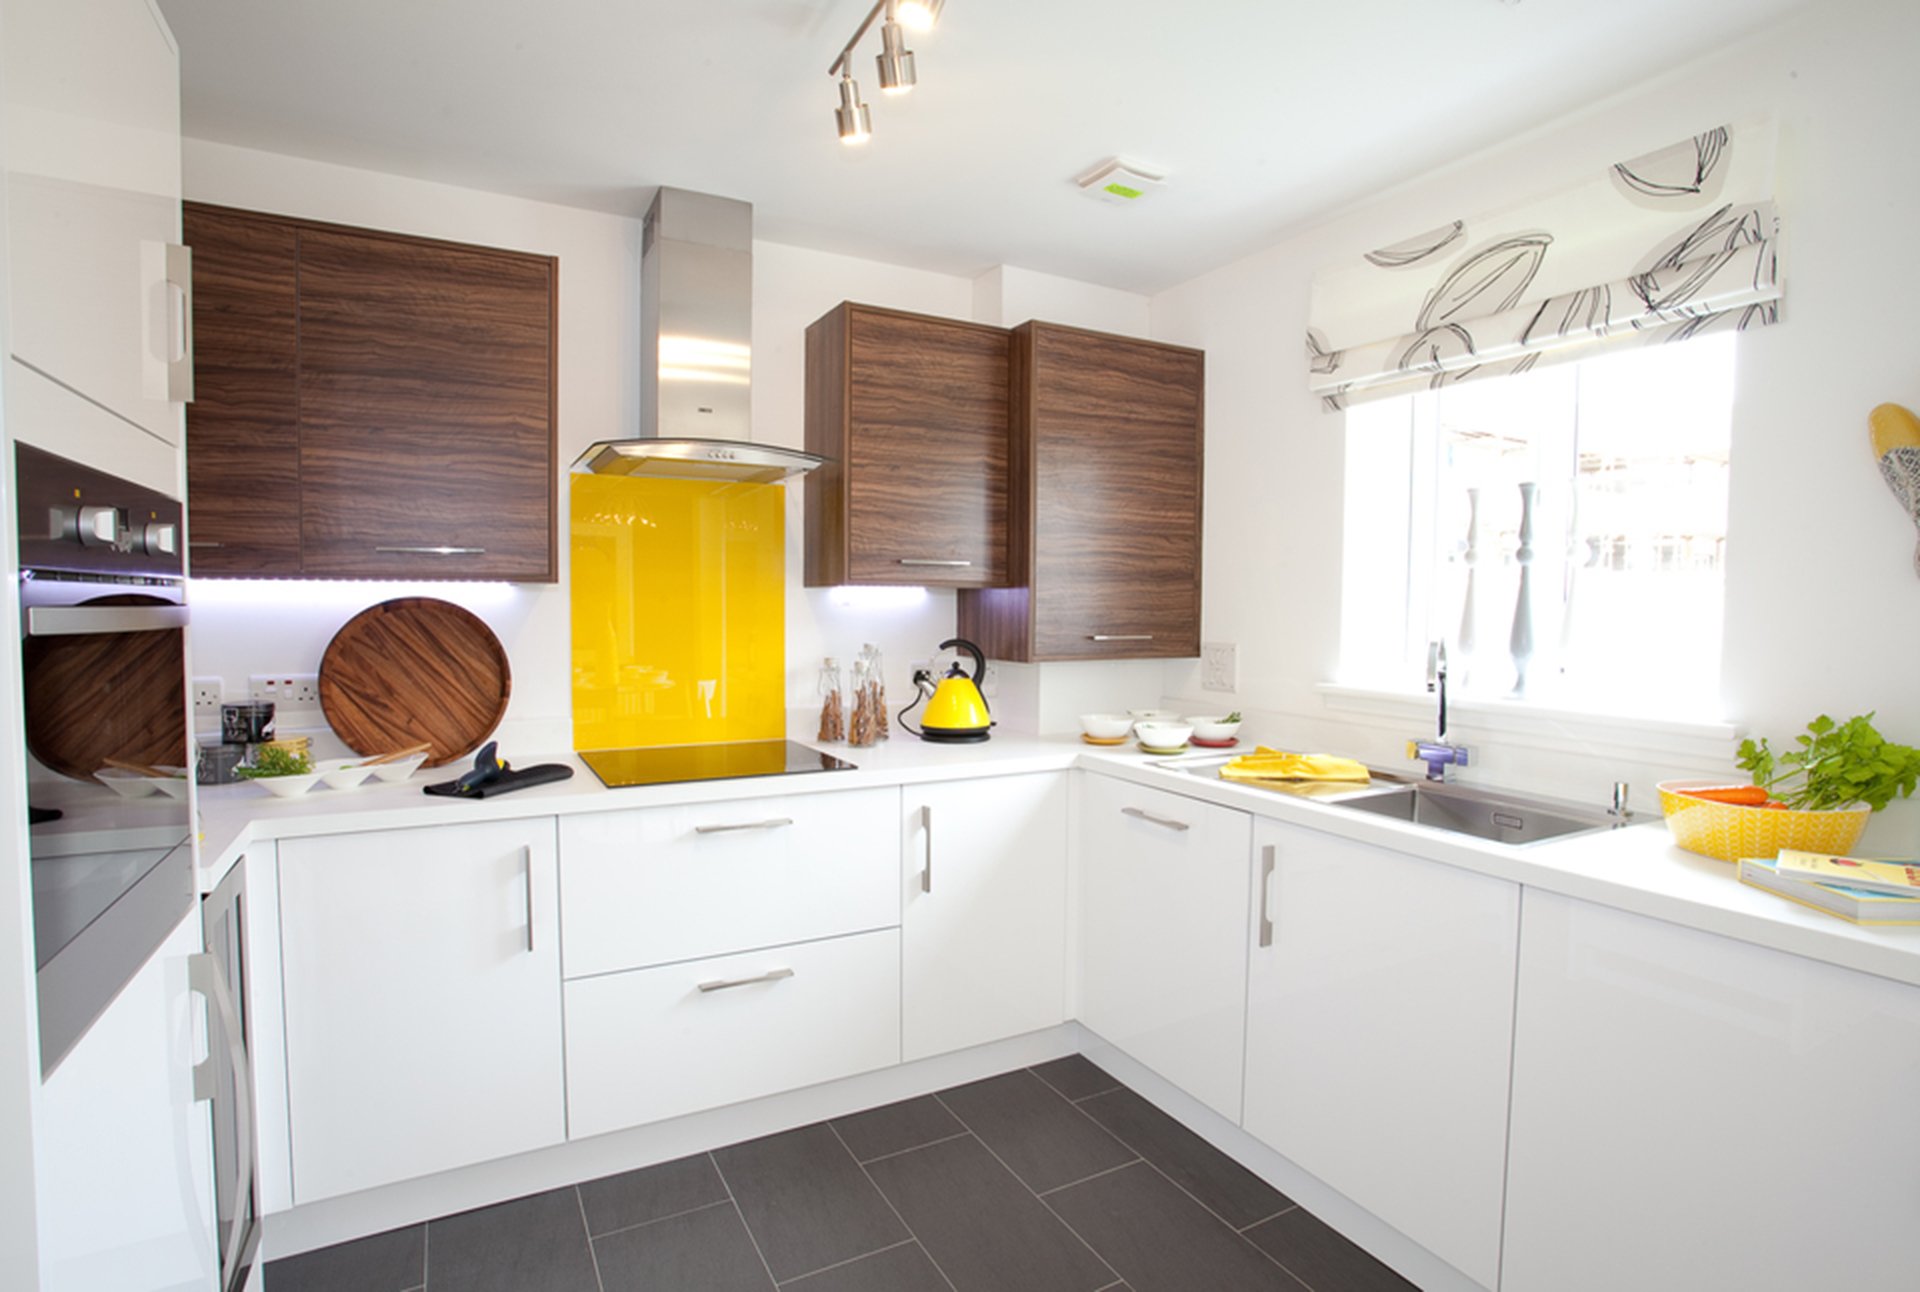 Kitchen with yellow features